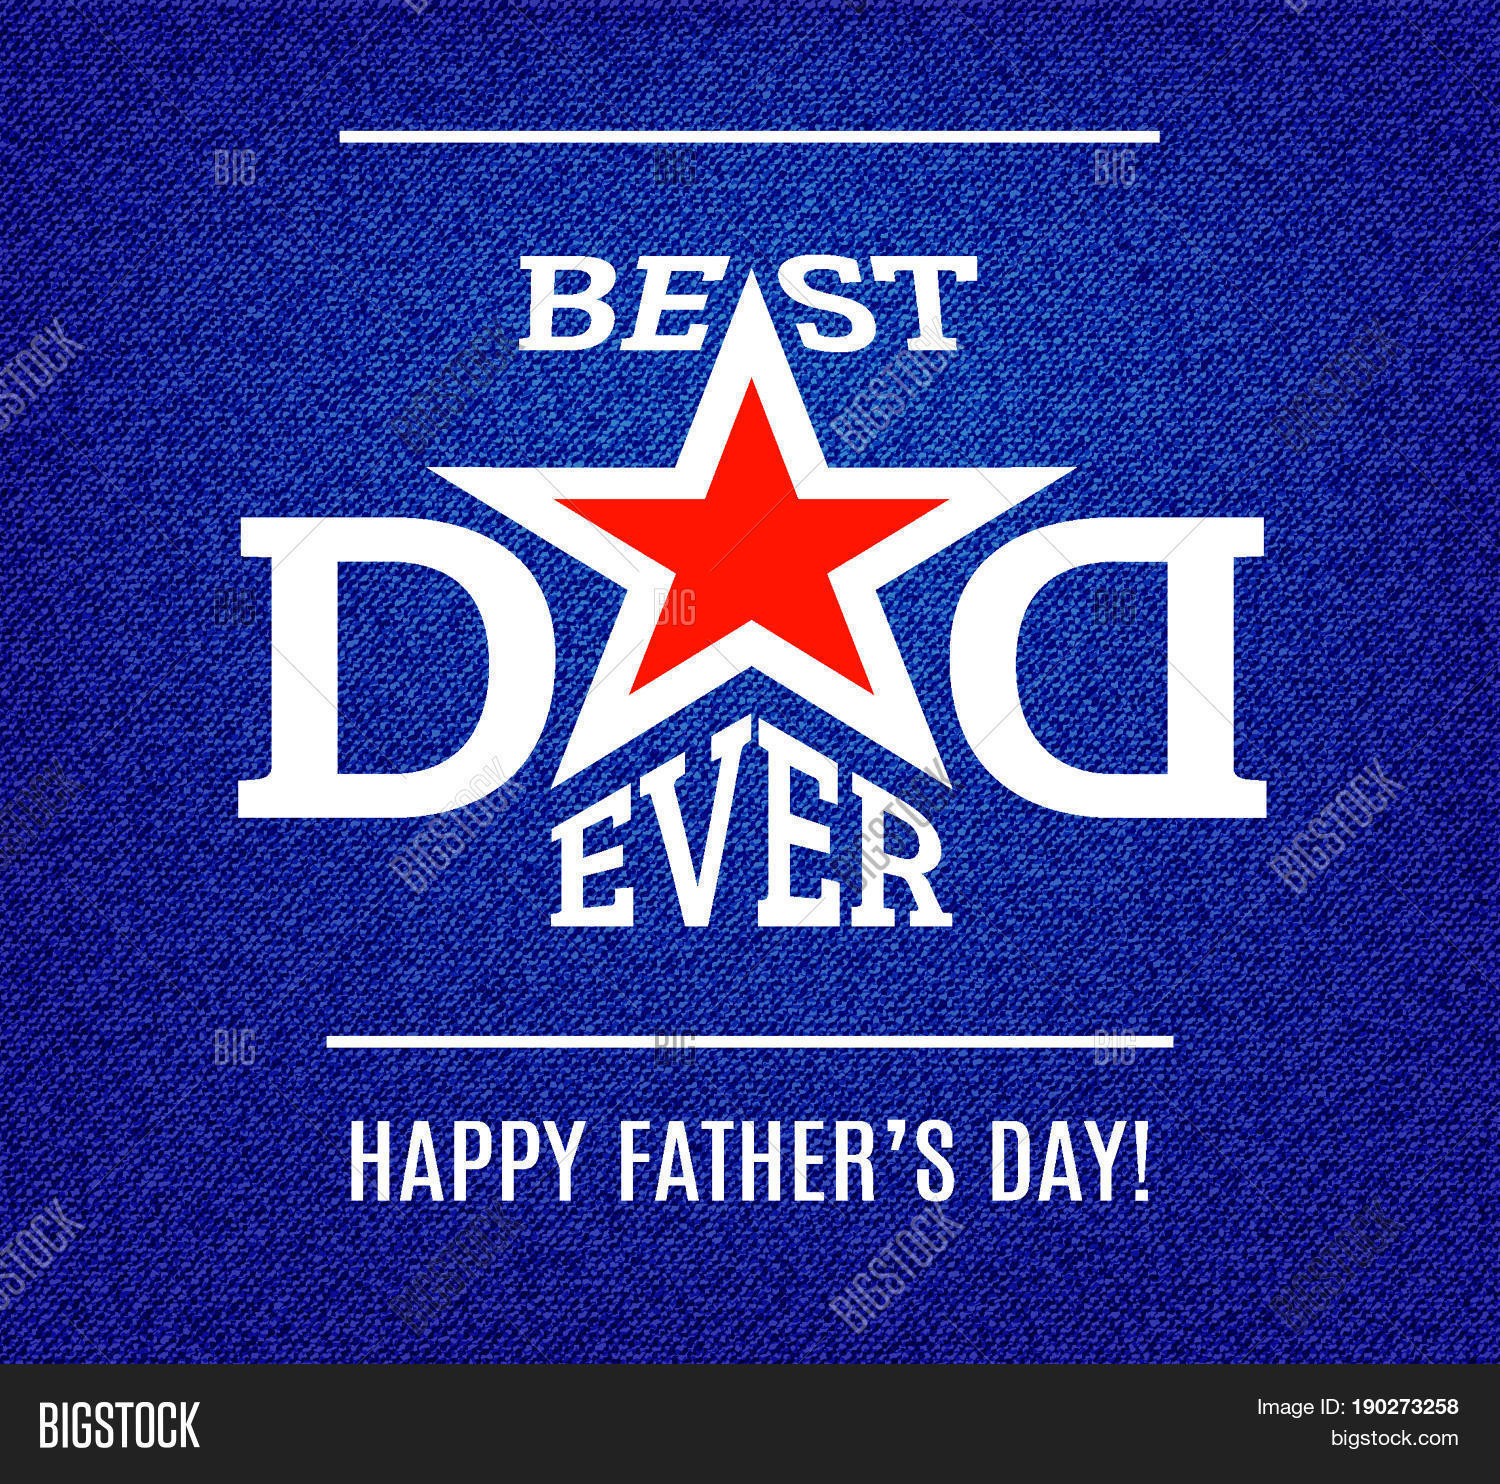 Happy Fathers Day Vector Photo Free Trial Bigstock